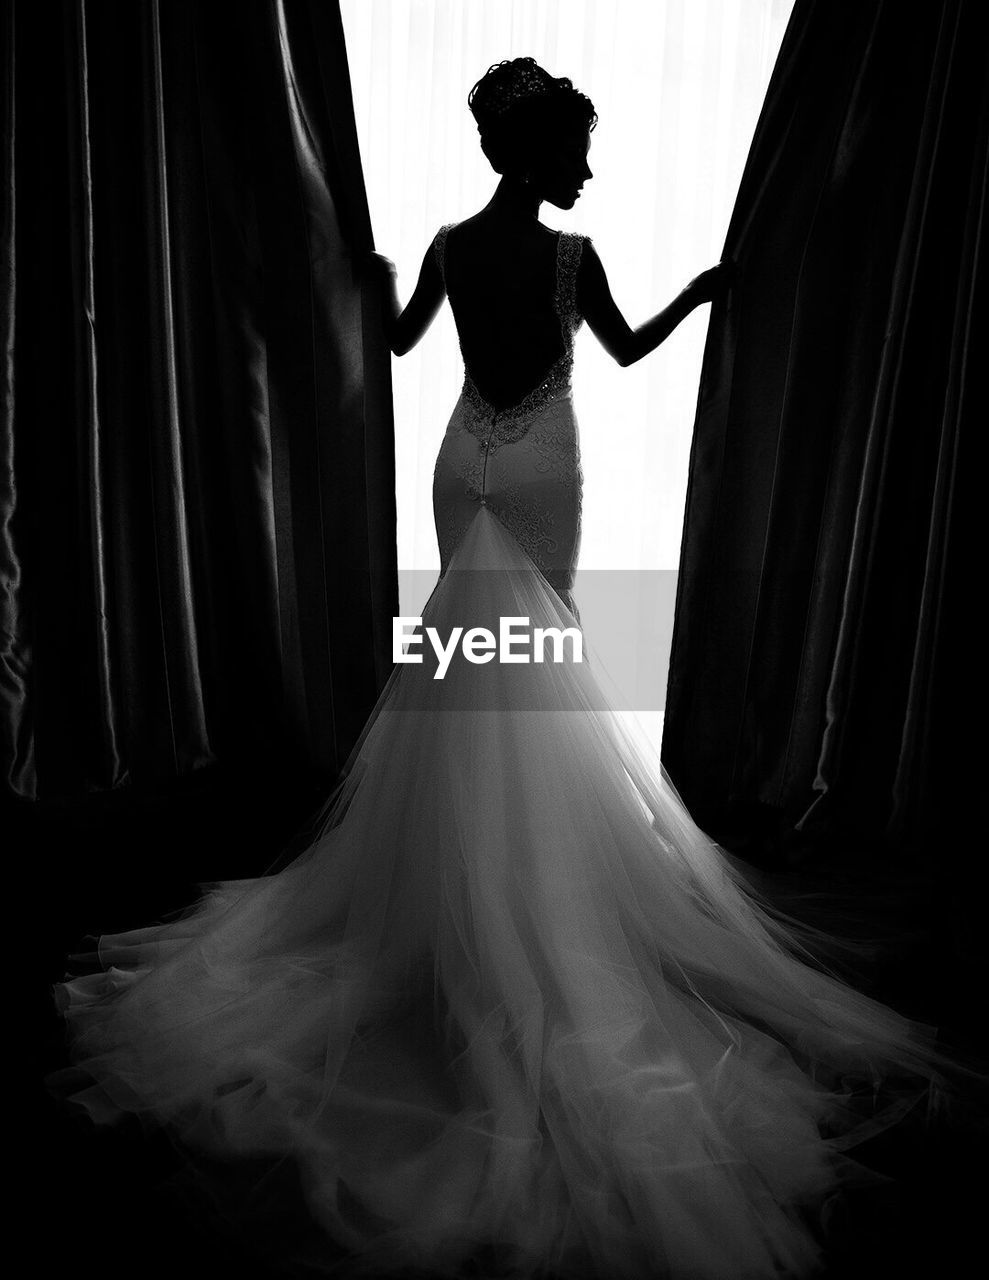 Rear view of fashion model in wedding dress while holding curtains